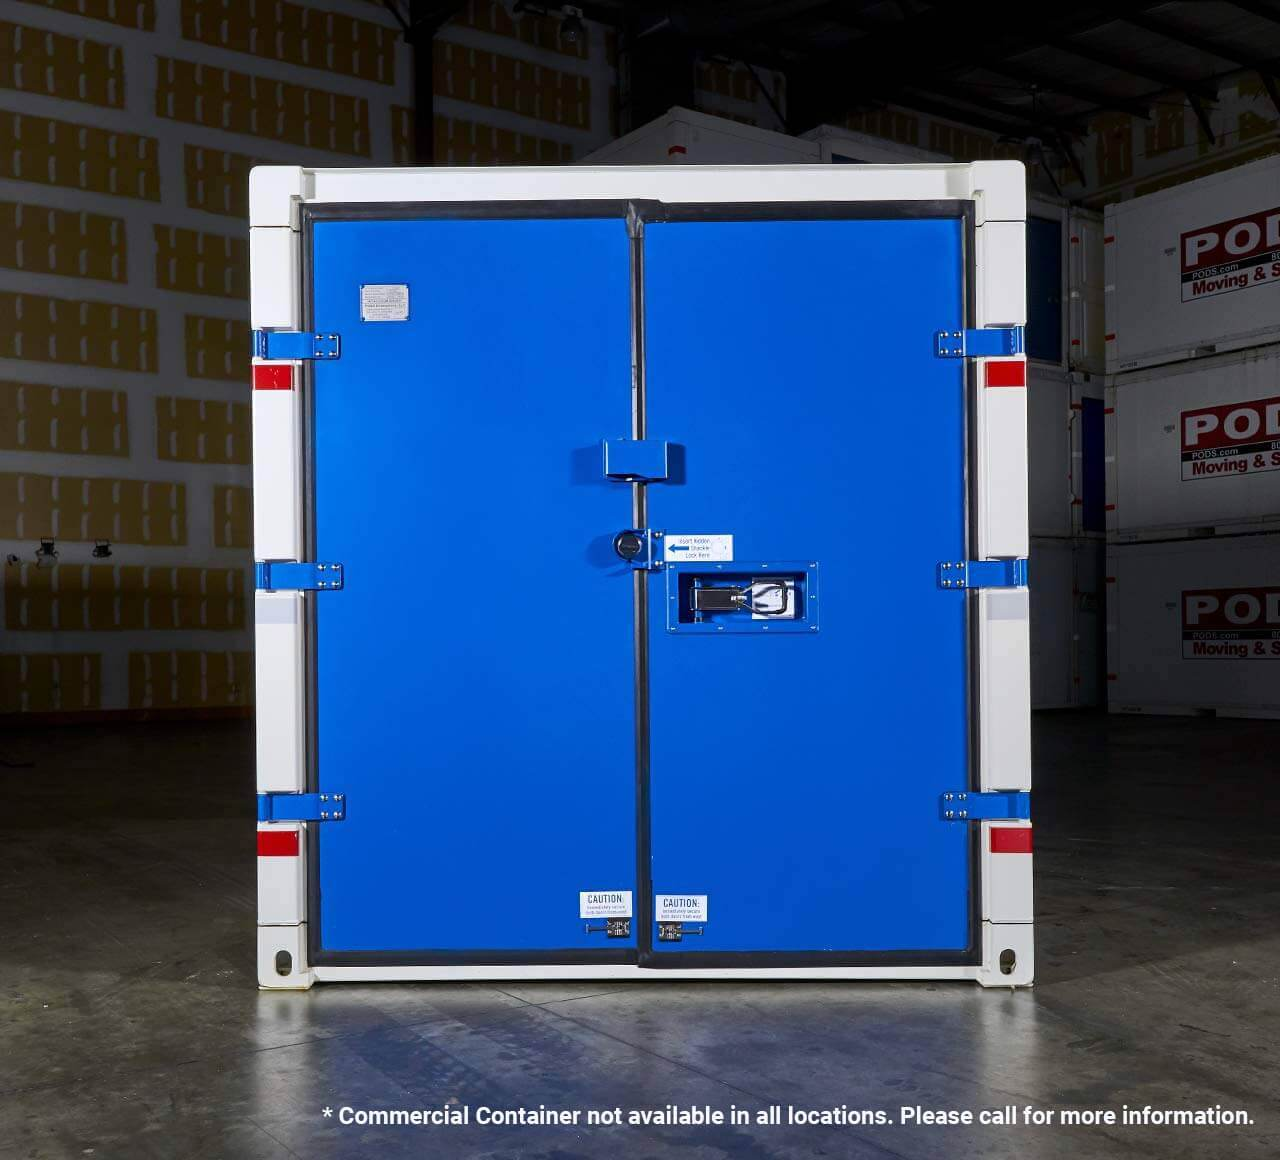 PODS for Business steel commercial container front view